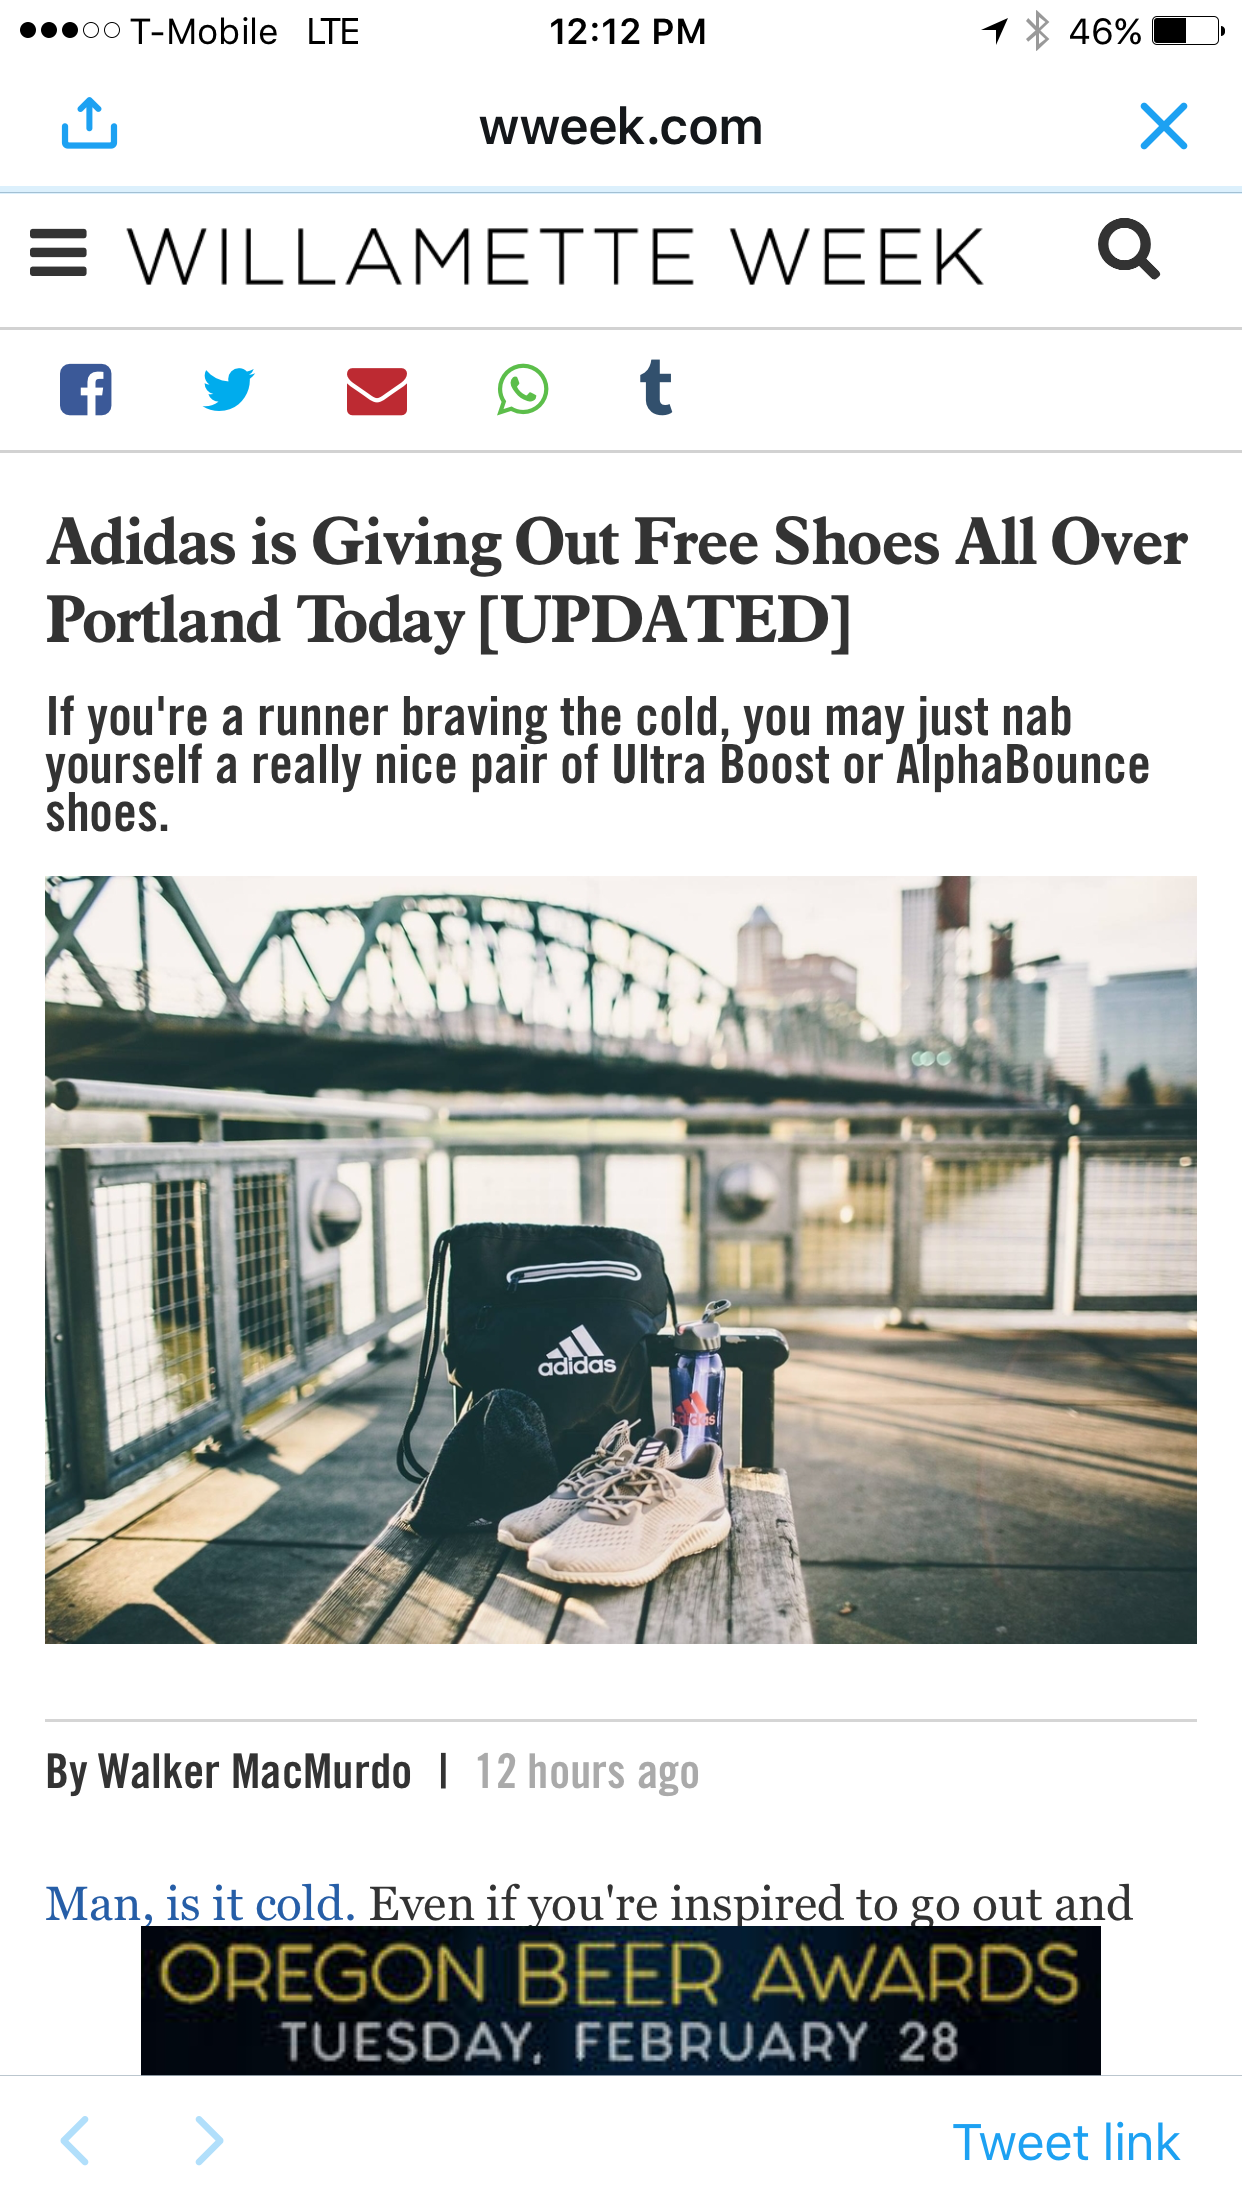 adidas Running in Willamette Weekly: #WhyIRunPortland Campaign - January 2017